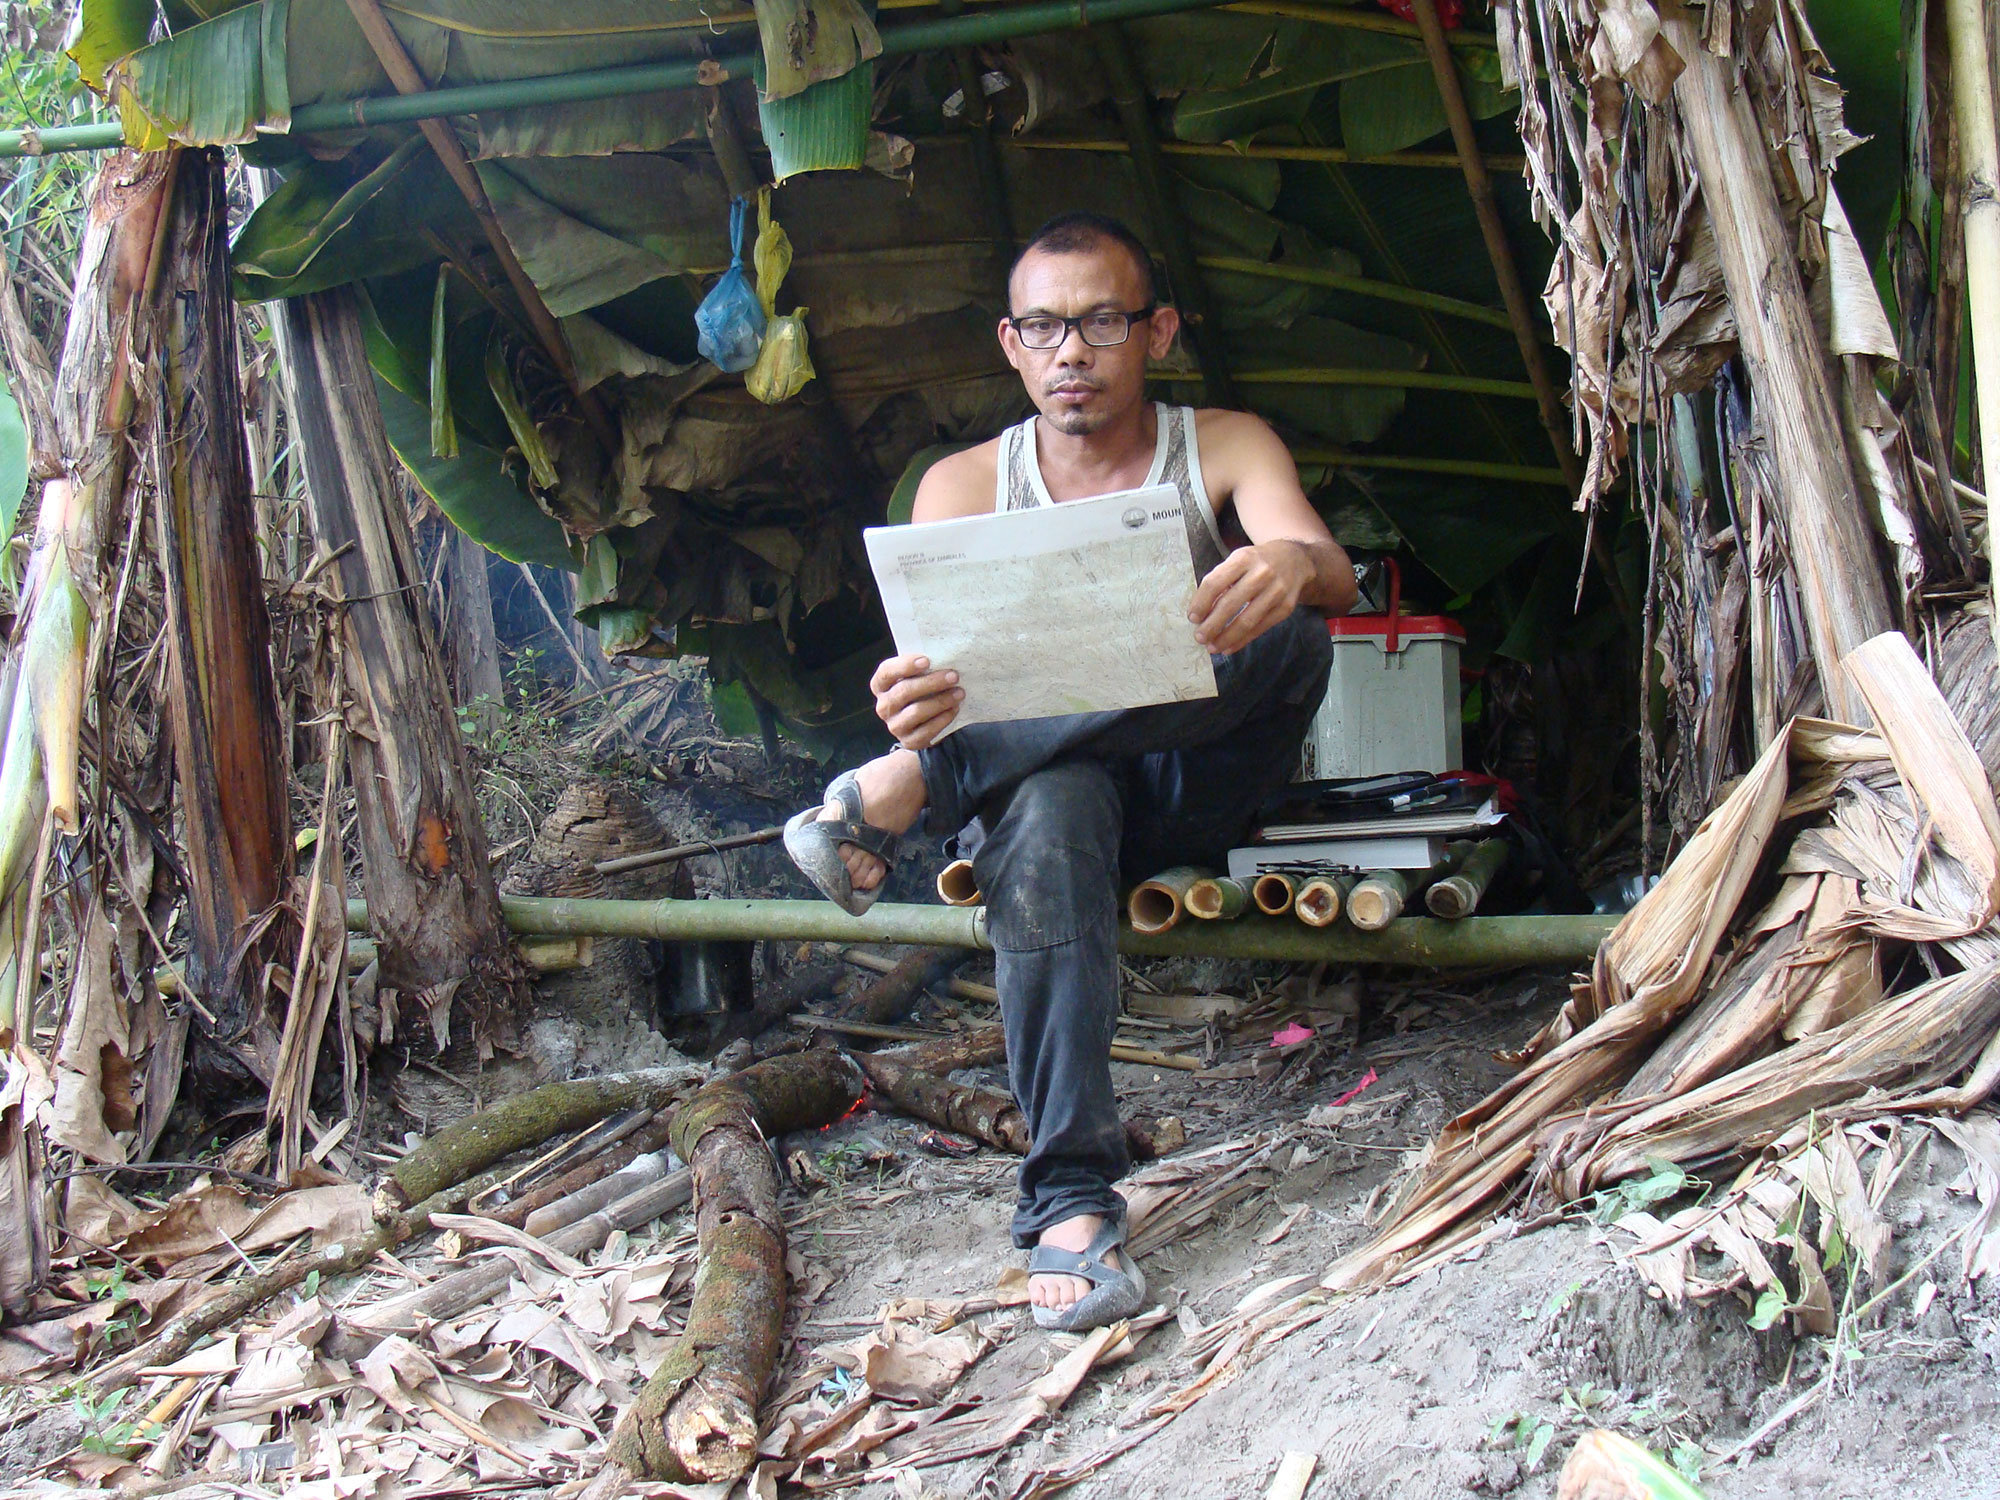 Filipino scientist Danny Balete sits under a shade made of palm leaves in the Philippines.